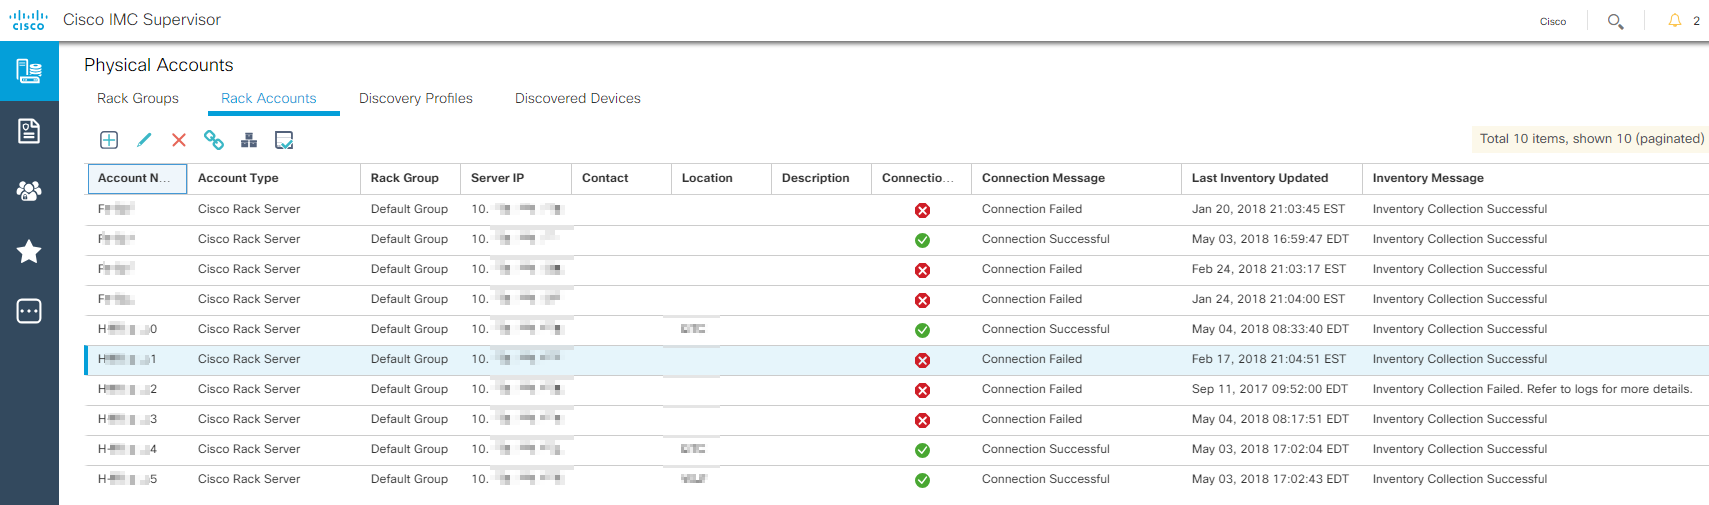 Cisco IMC from some servers is not connected